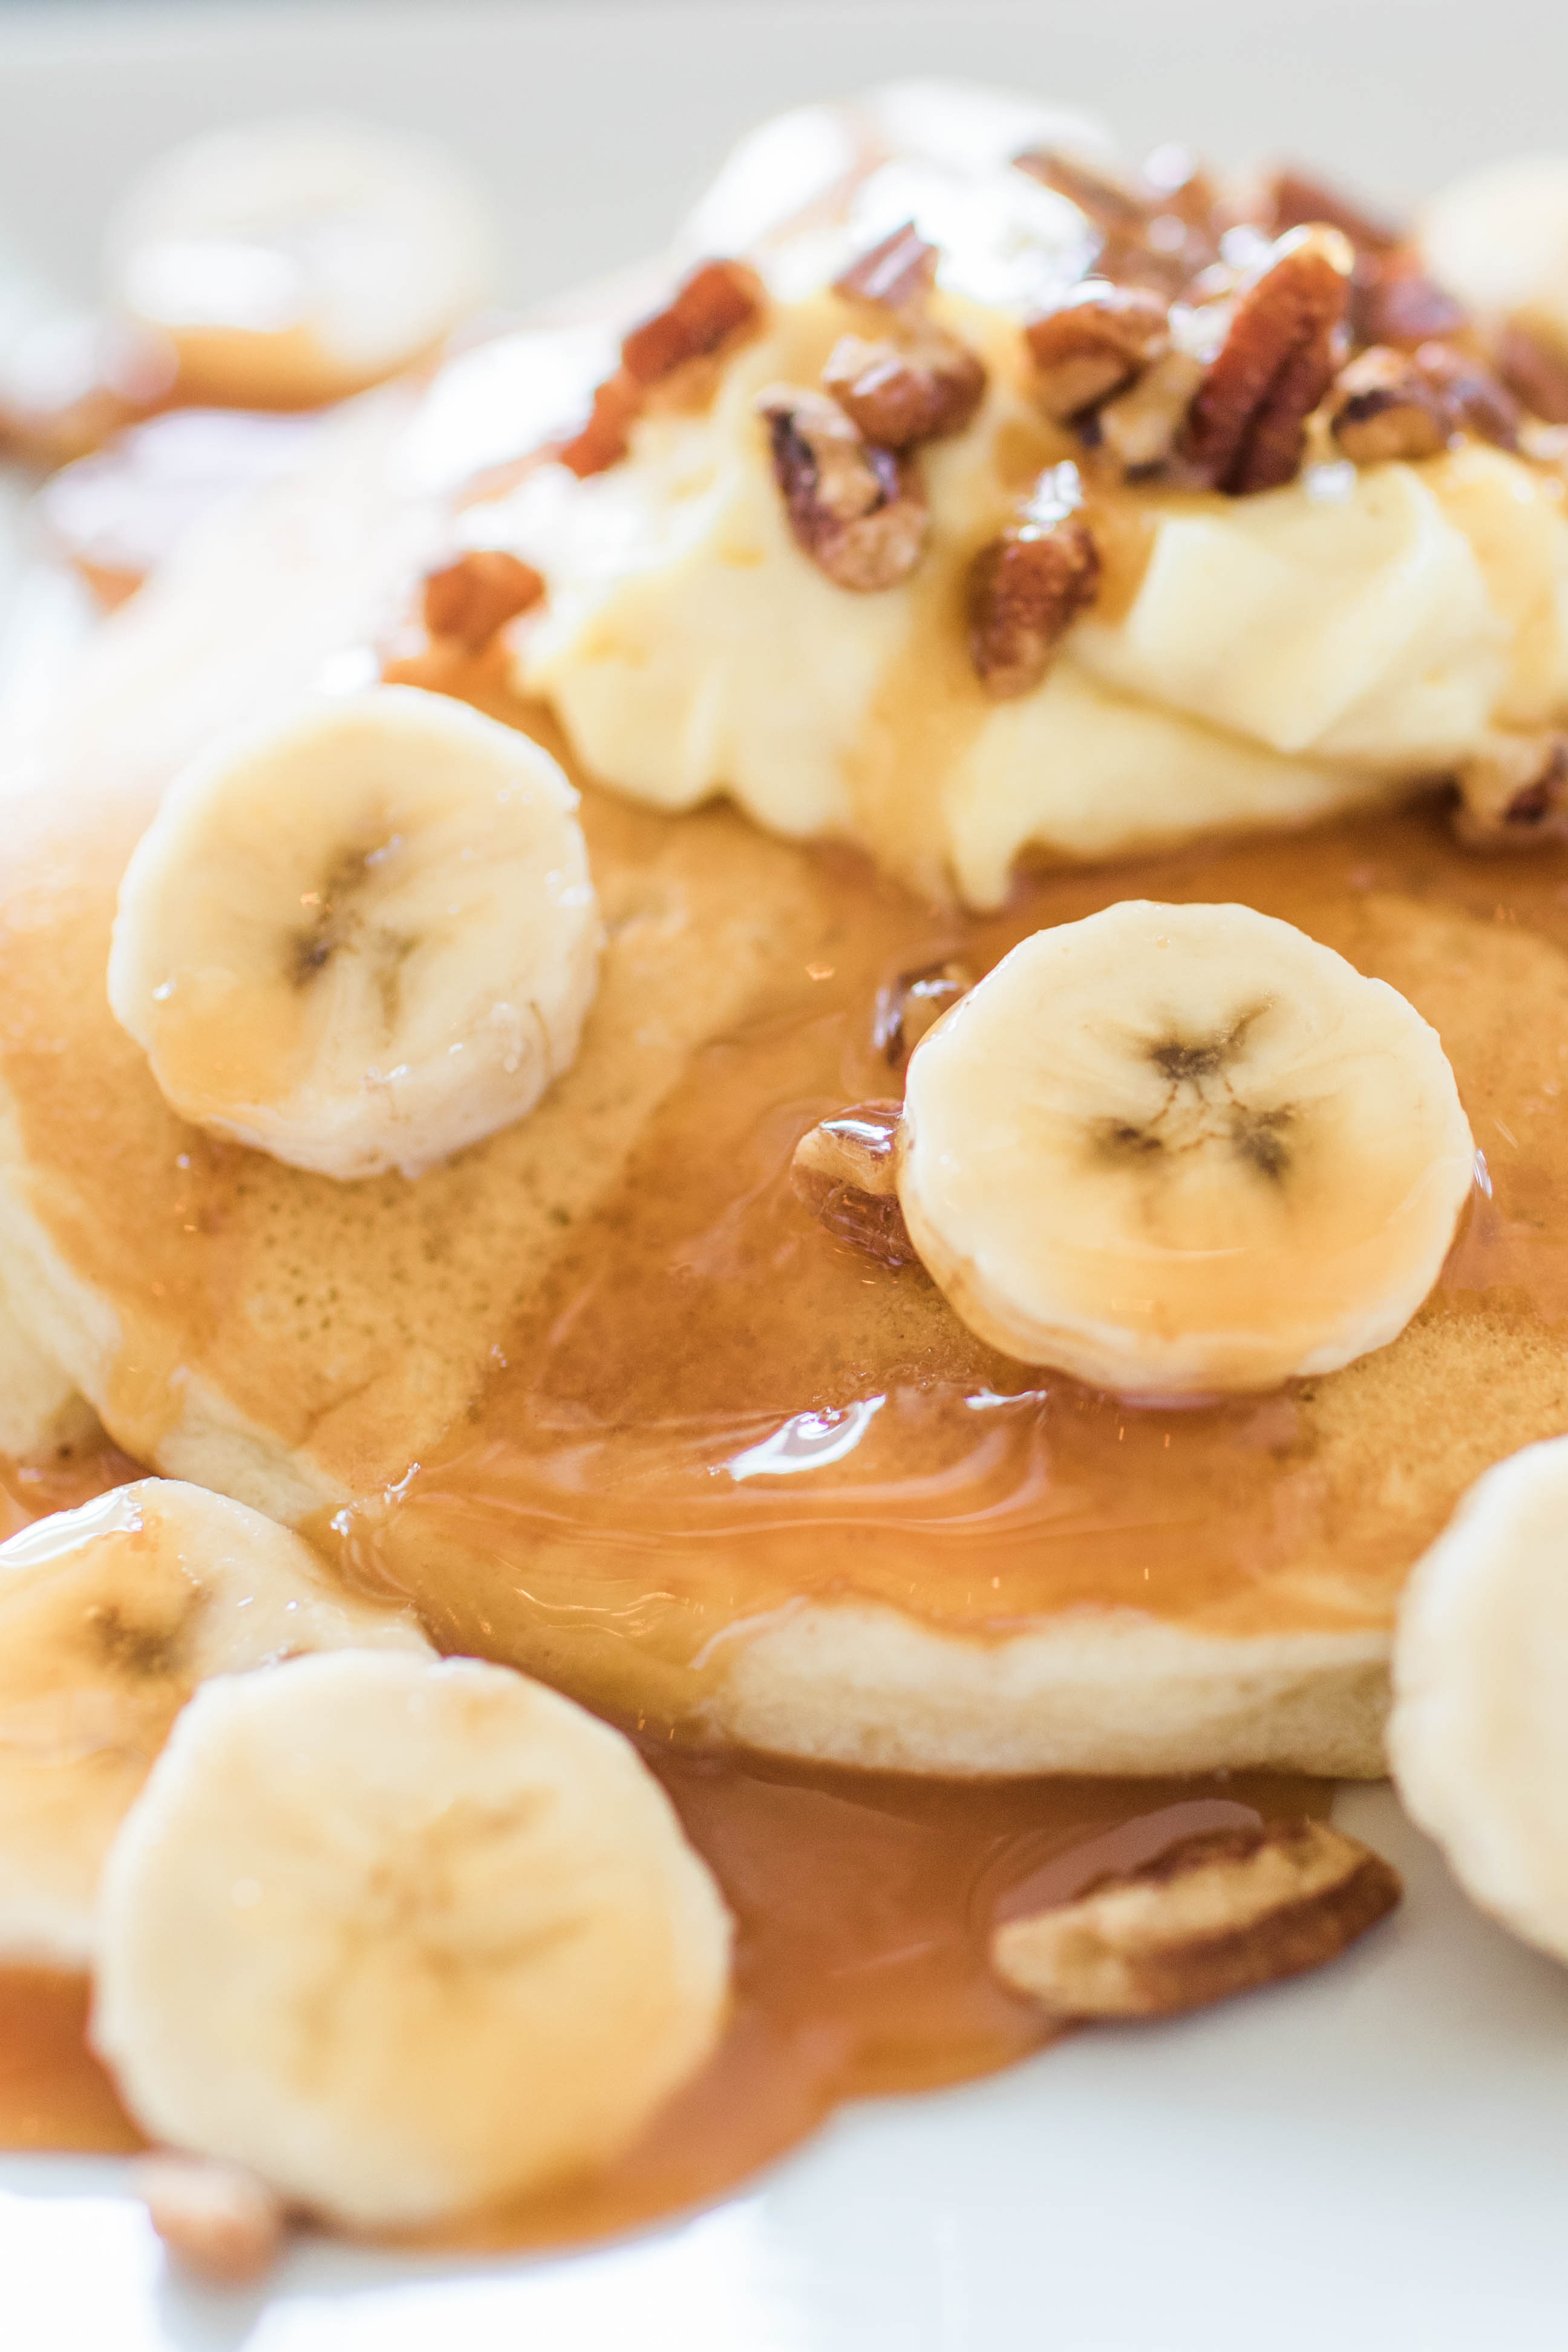 Pancakes from Disney with Bananas and whip cream